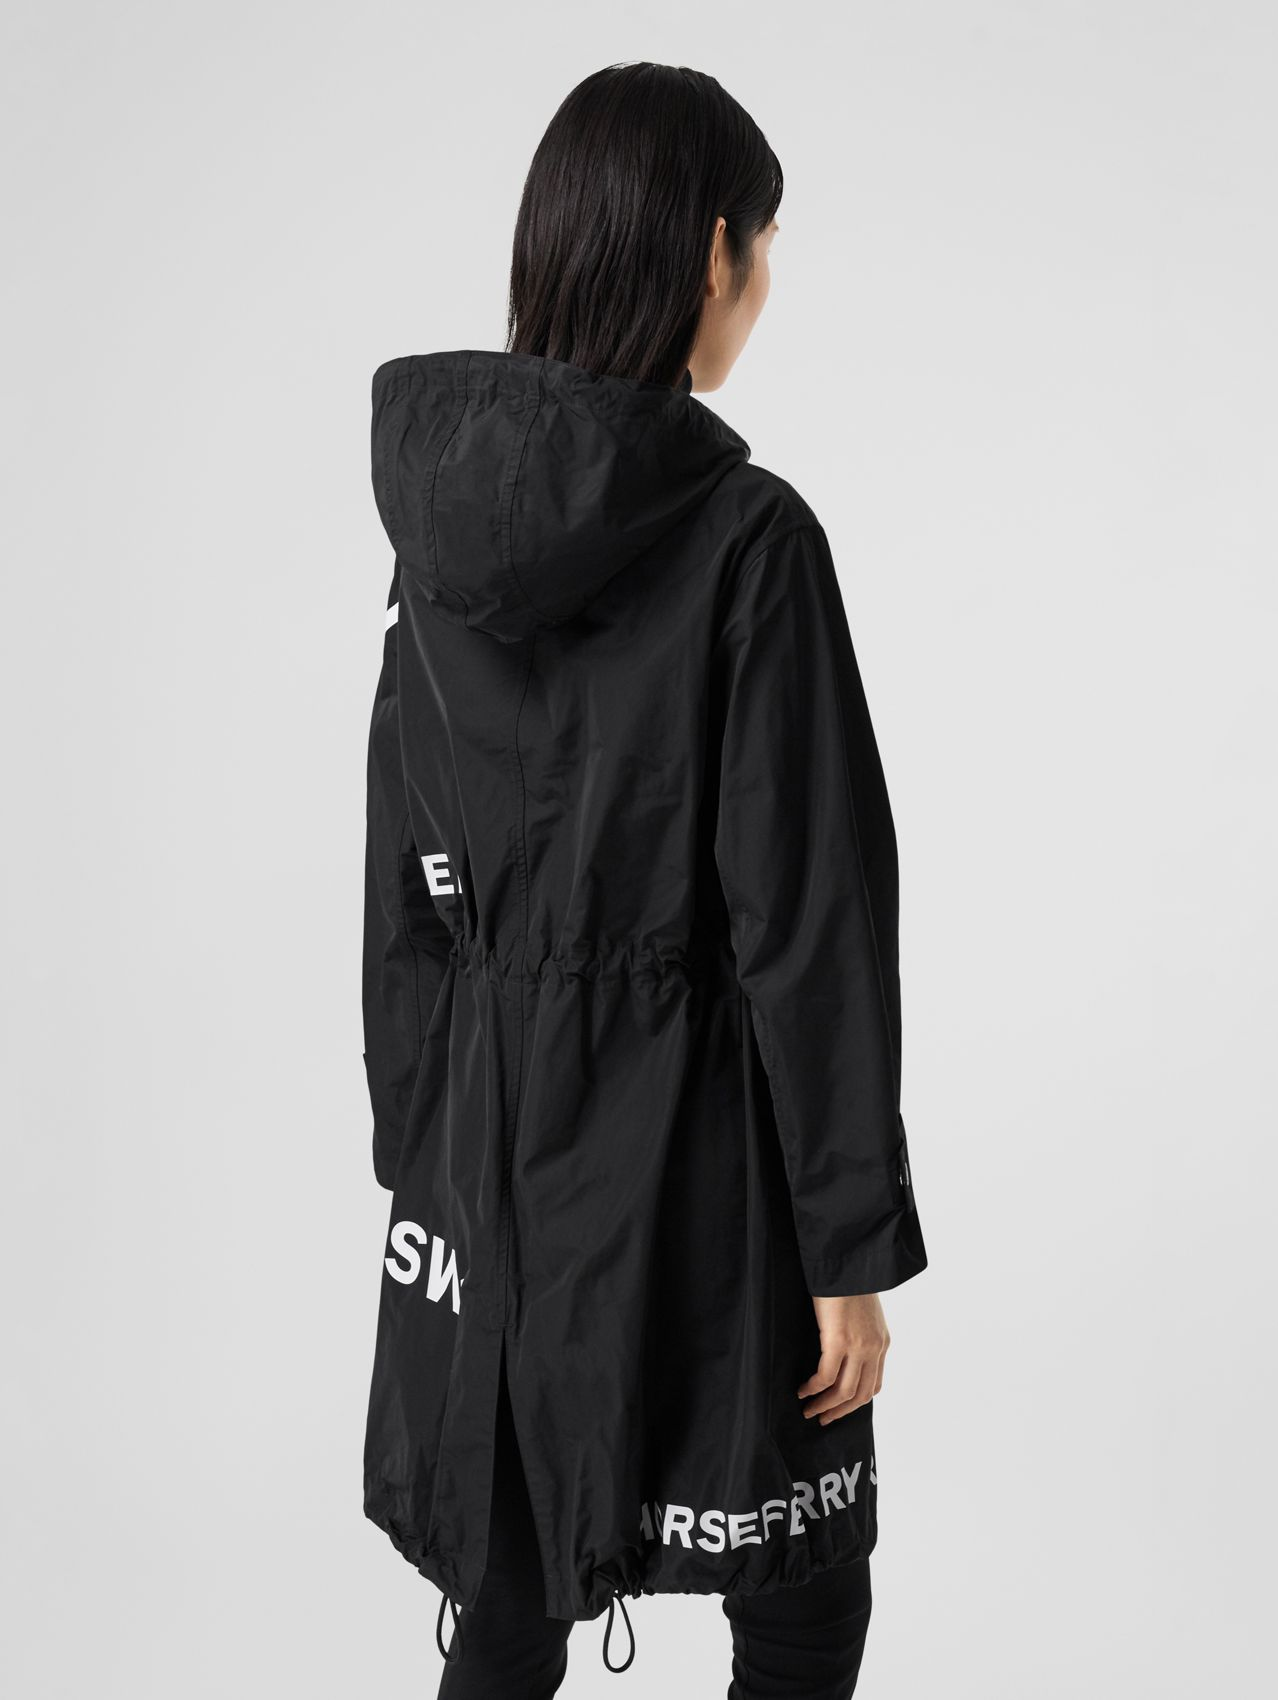 Parka en nailon con estampado Horseferry (Negro)